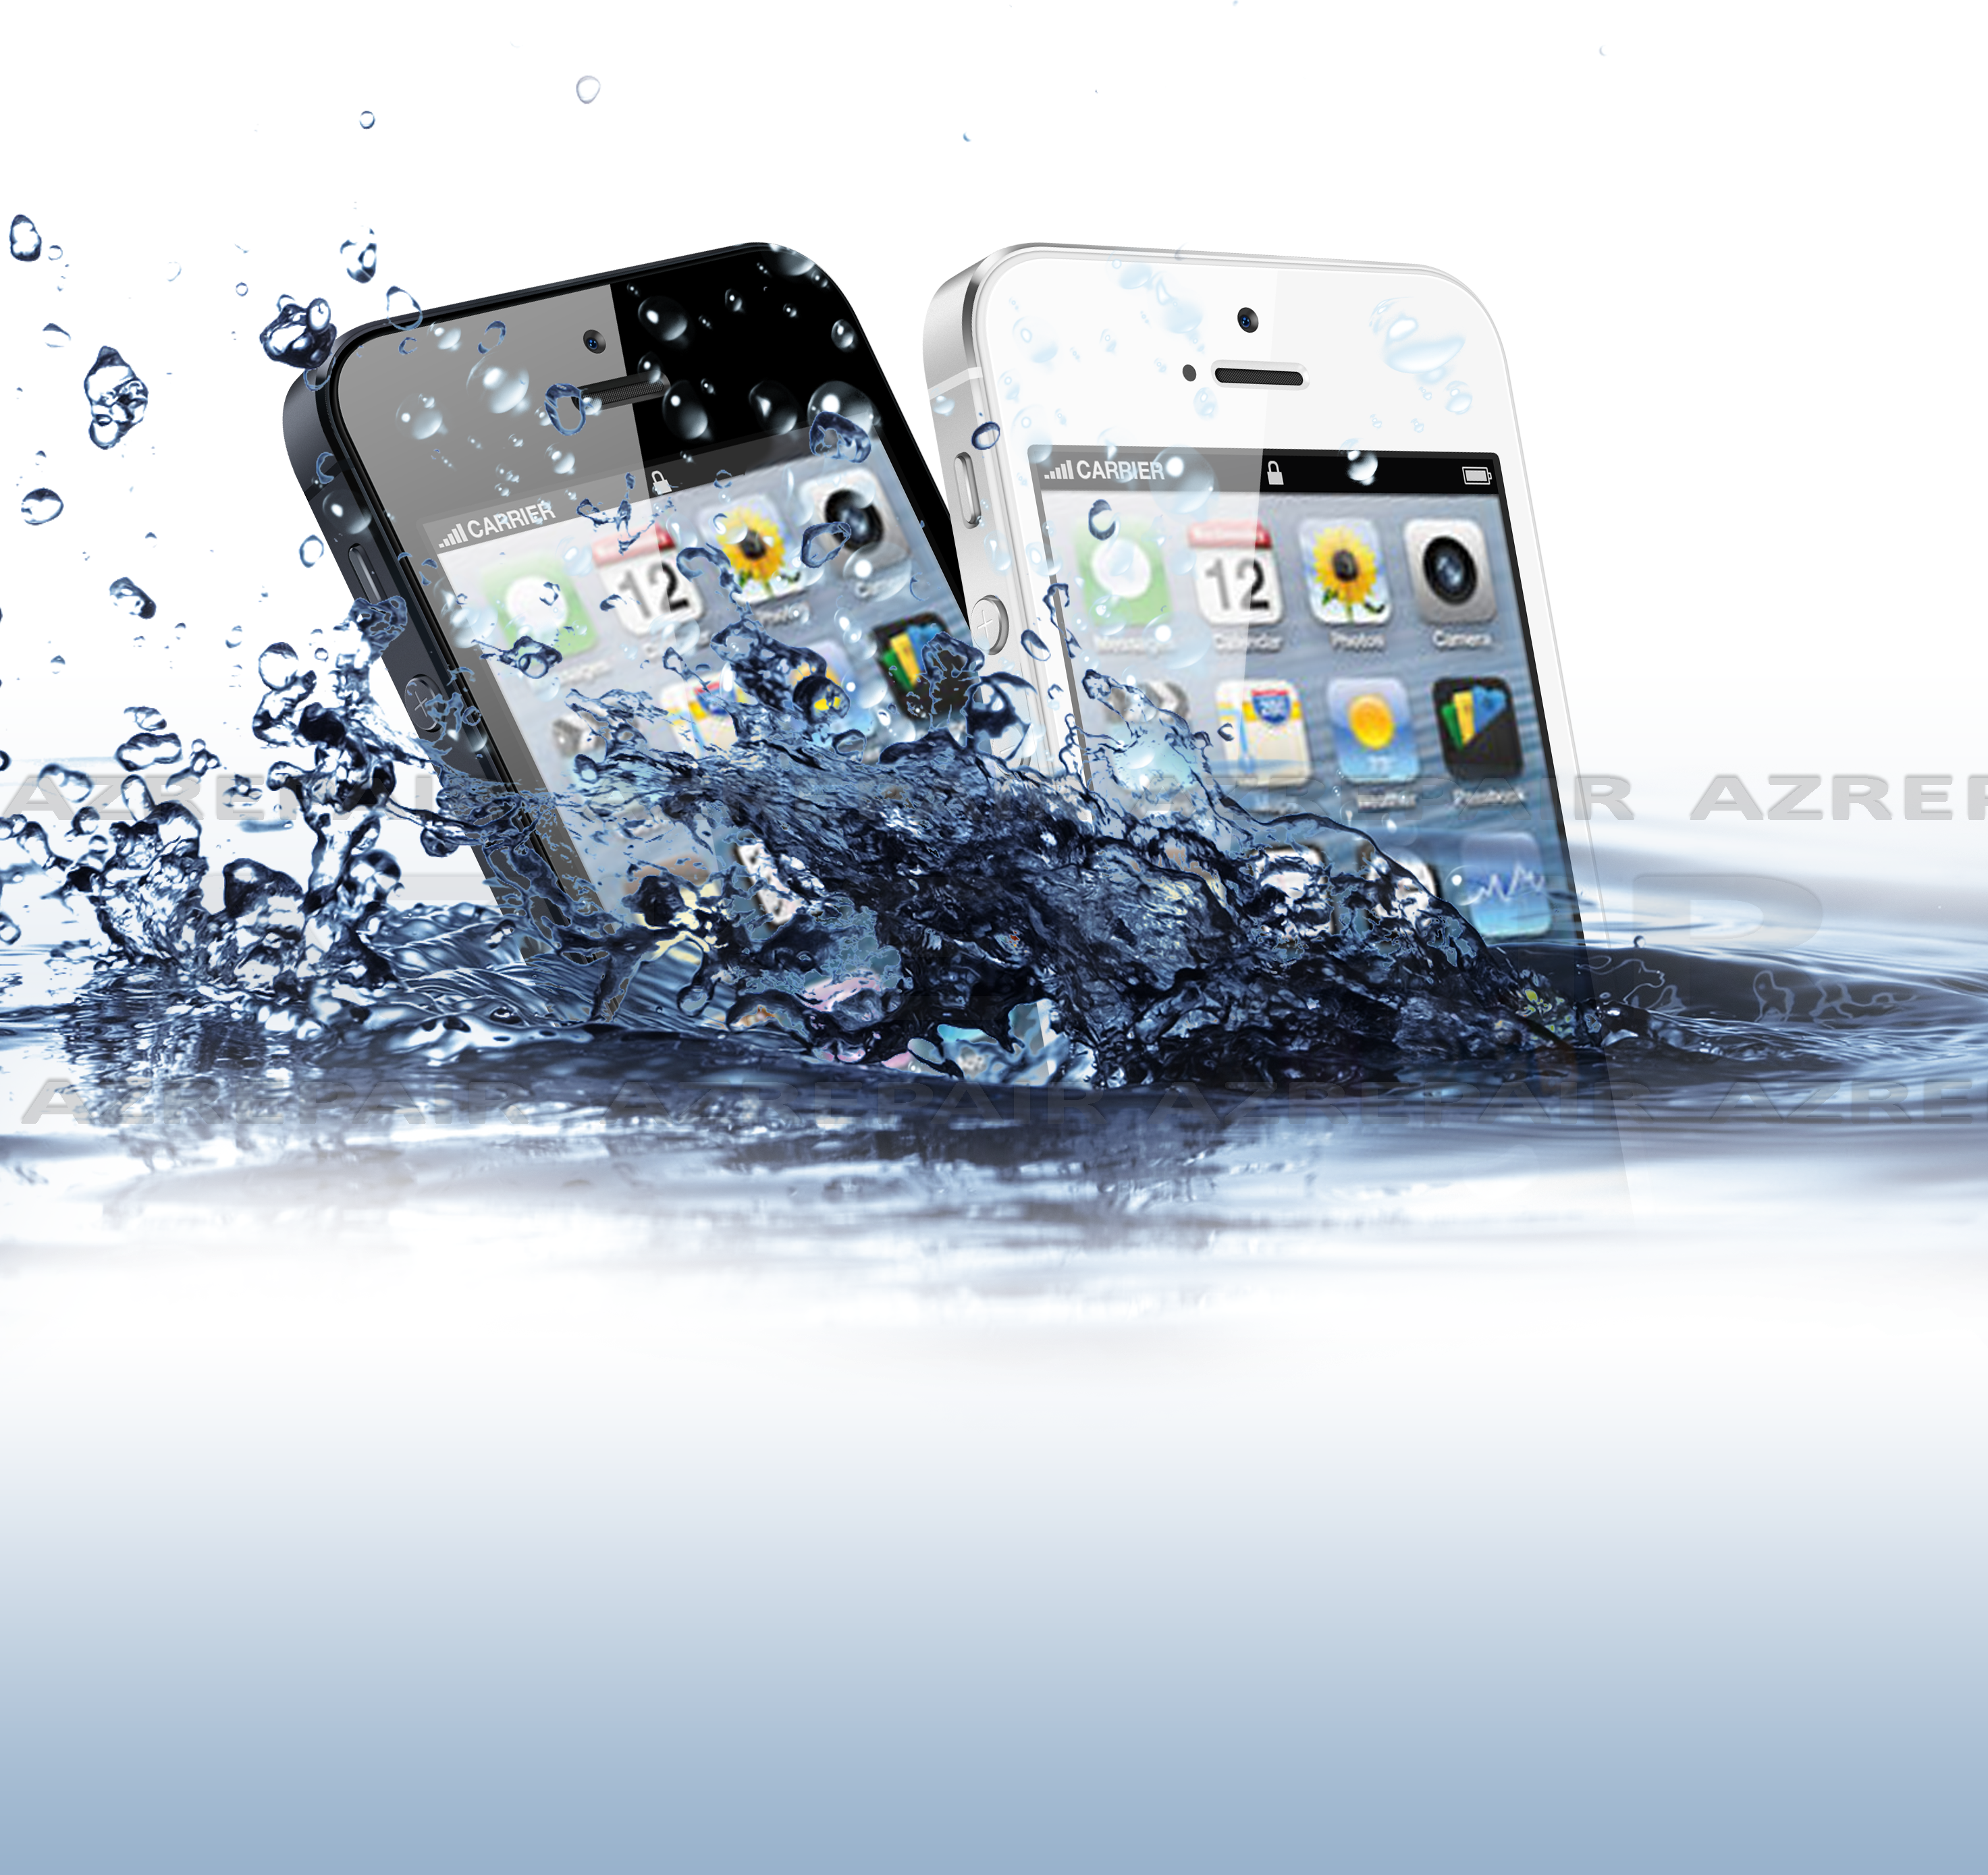 iPhone 5 R�paration, d�soxydation d'un iPhone 5 tomb� dans l'eau